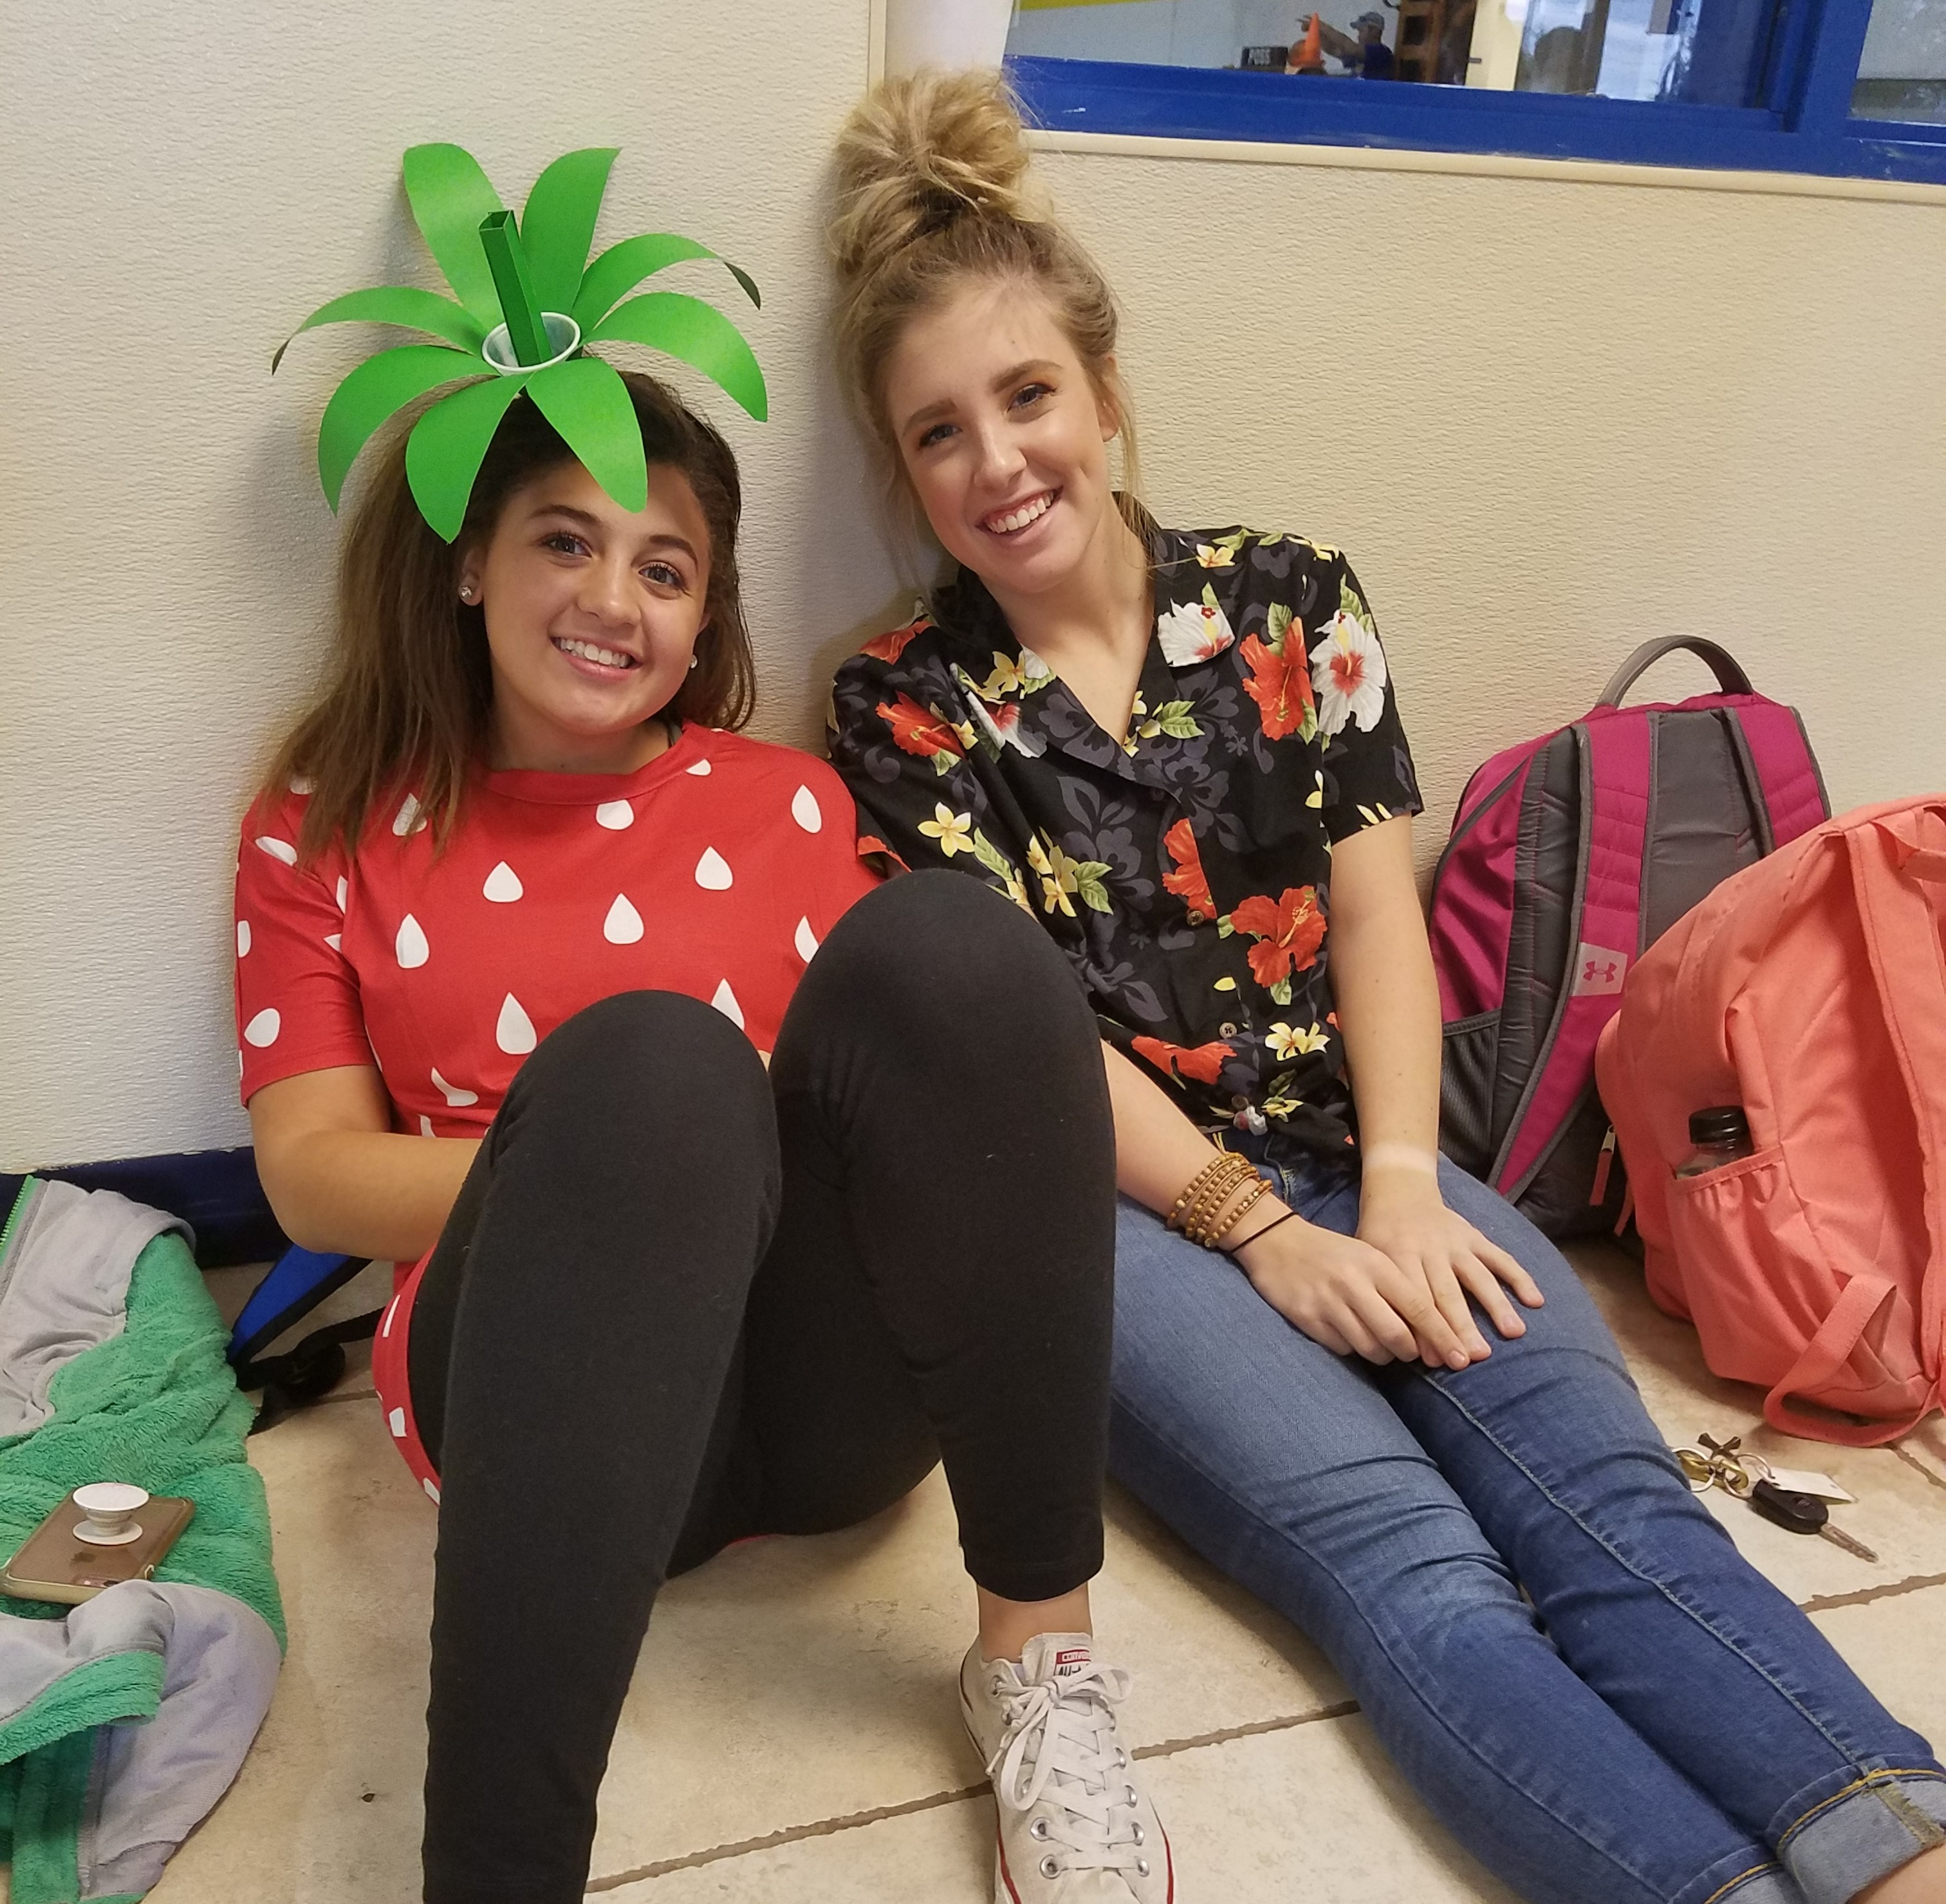 Two girls smiling at the picture, one of them dressed up as a strawberry.